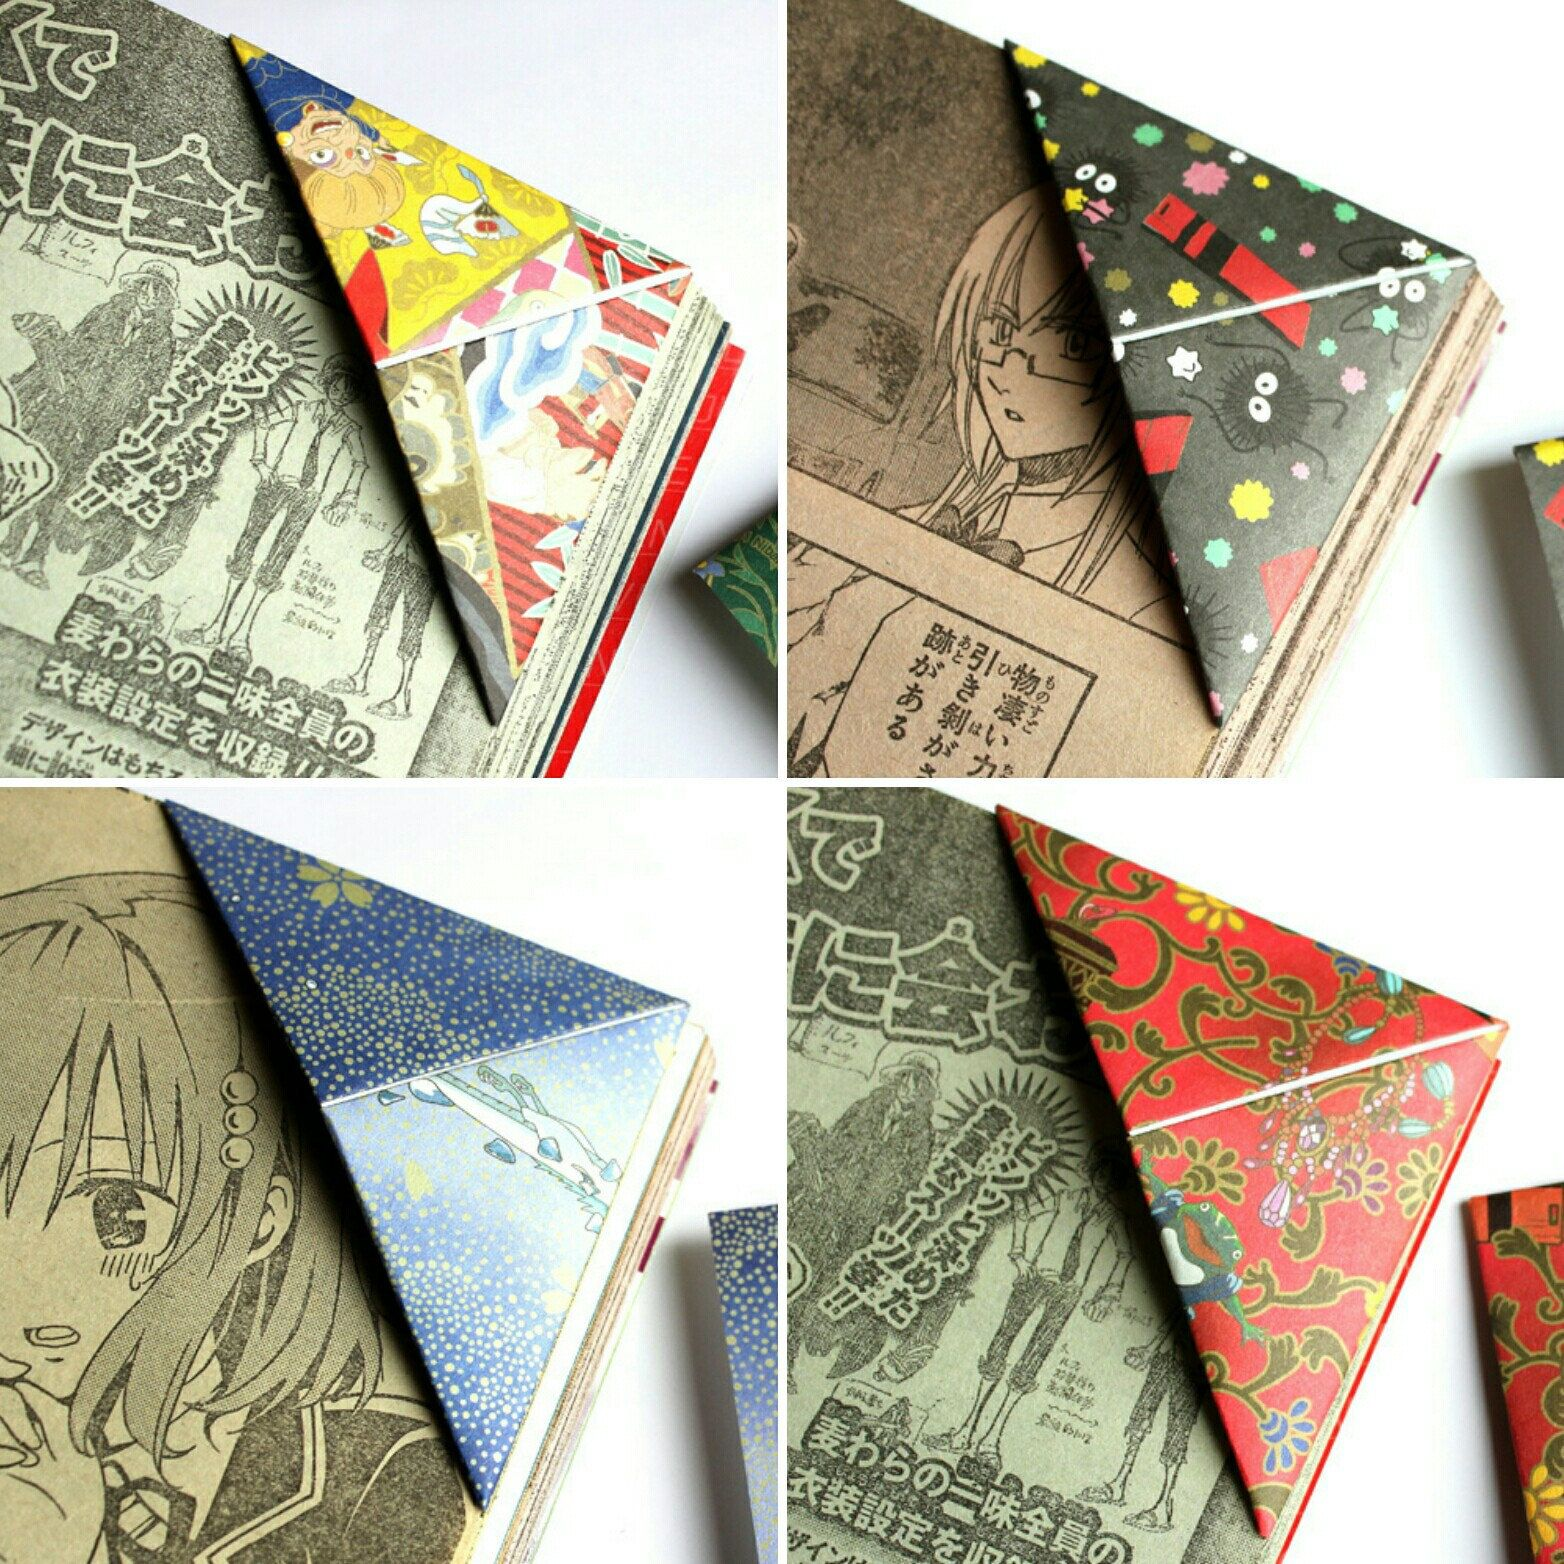 Origami Le spirited away origami bookmarks made with studio ghibli official